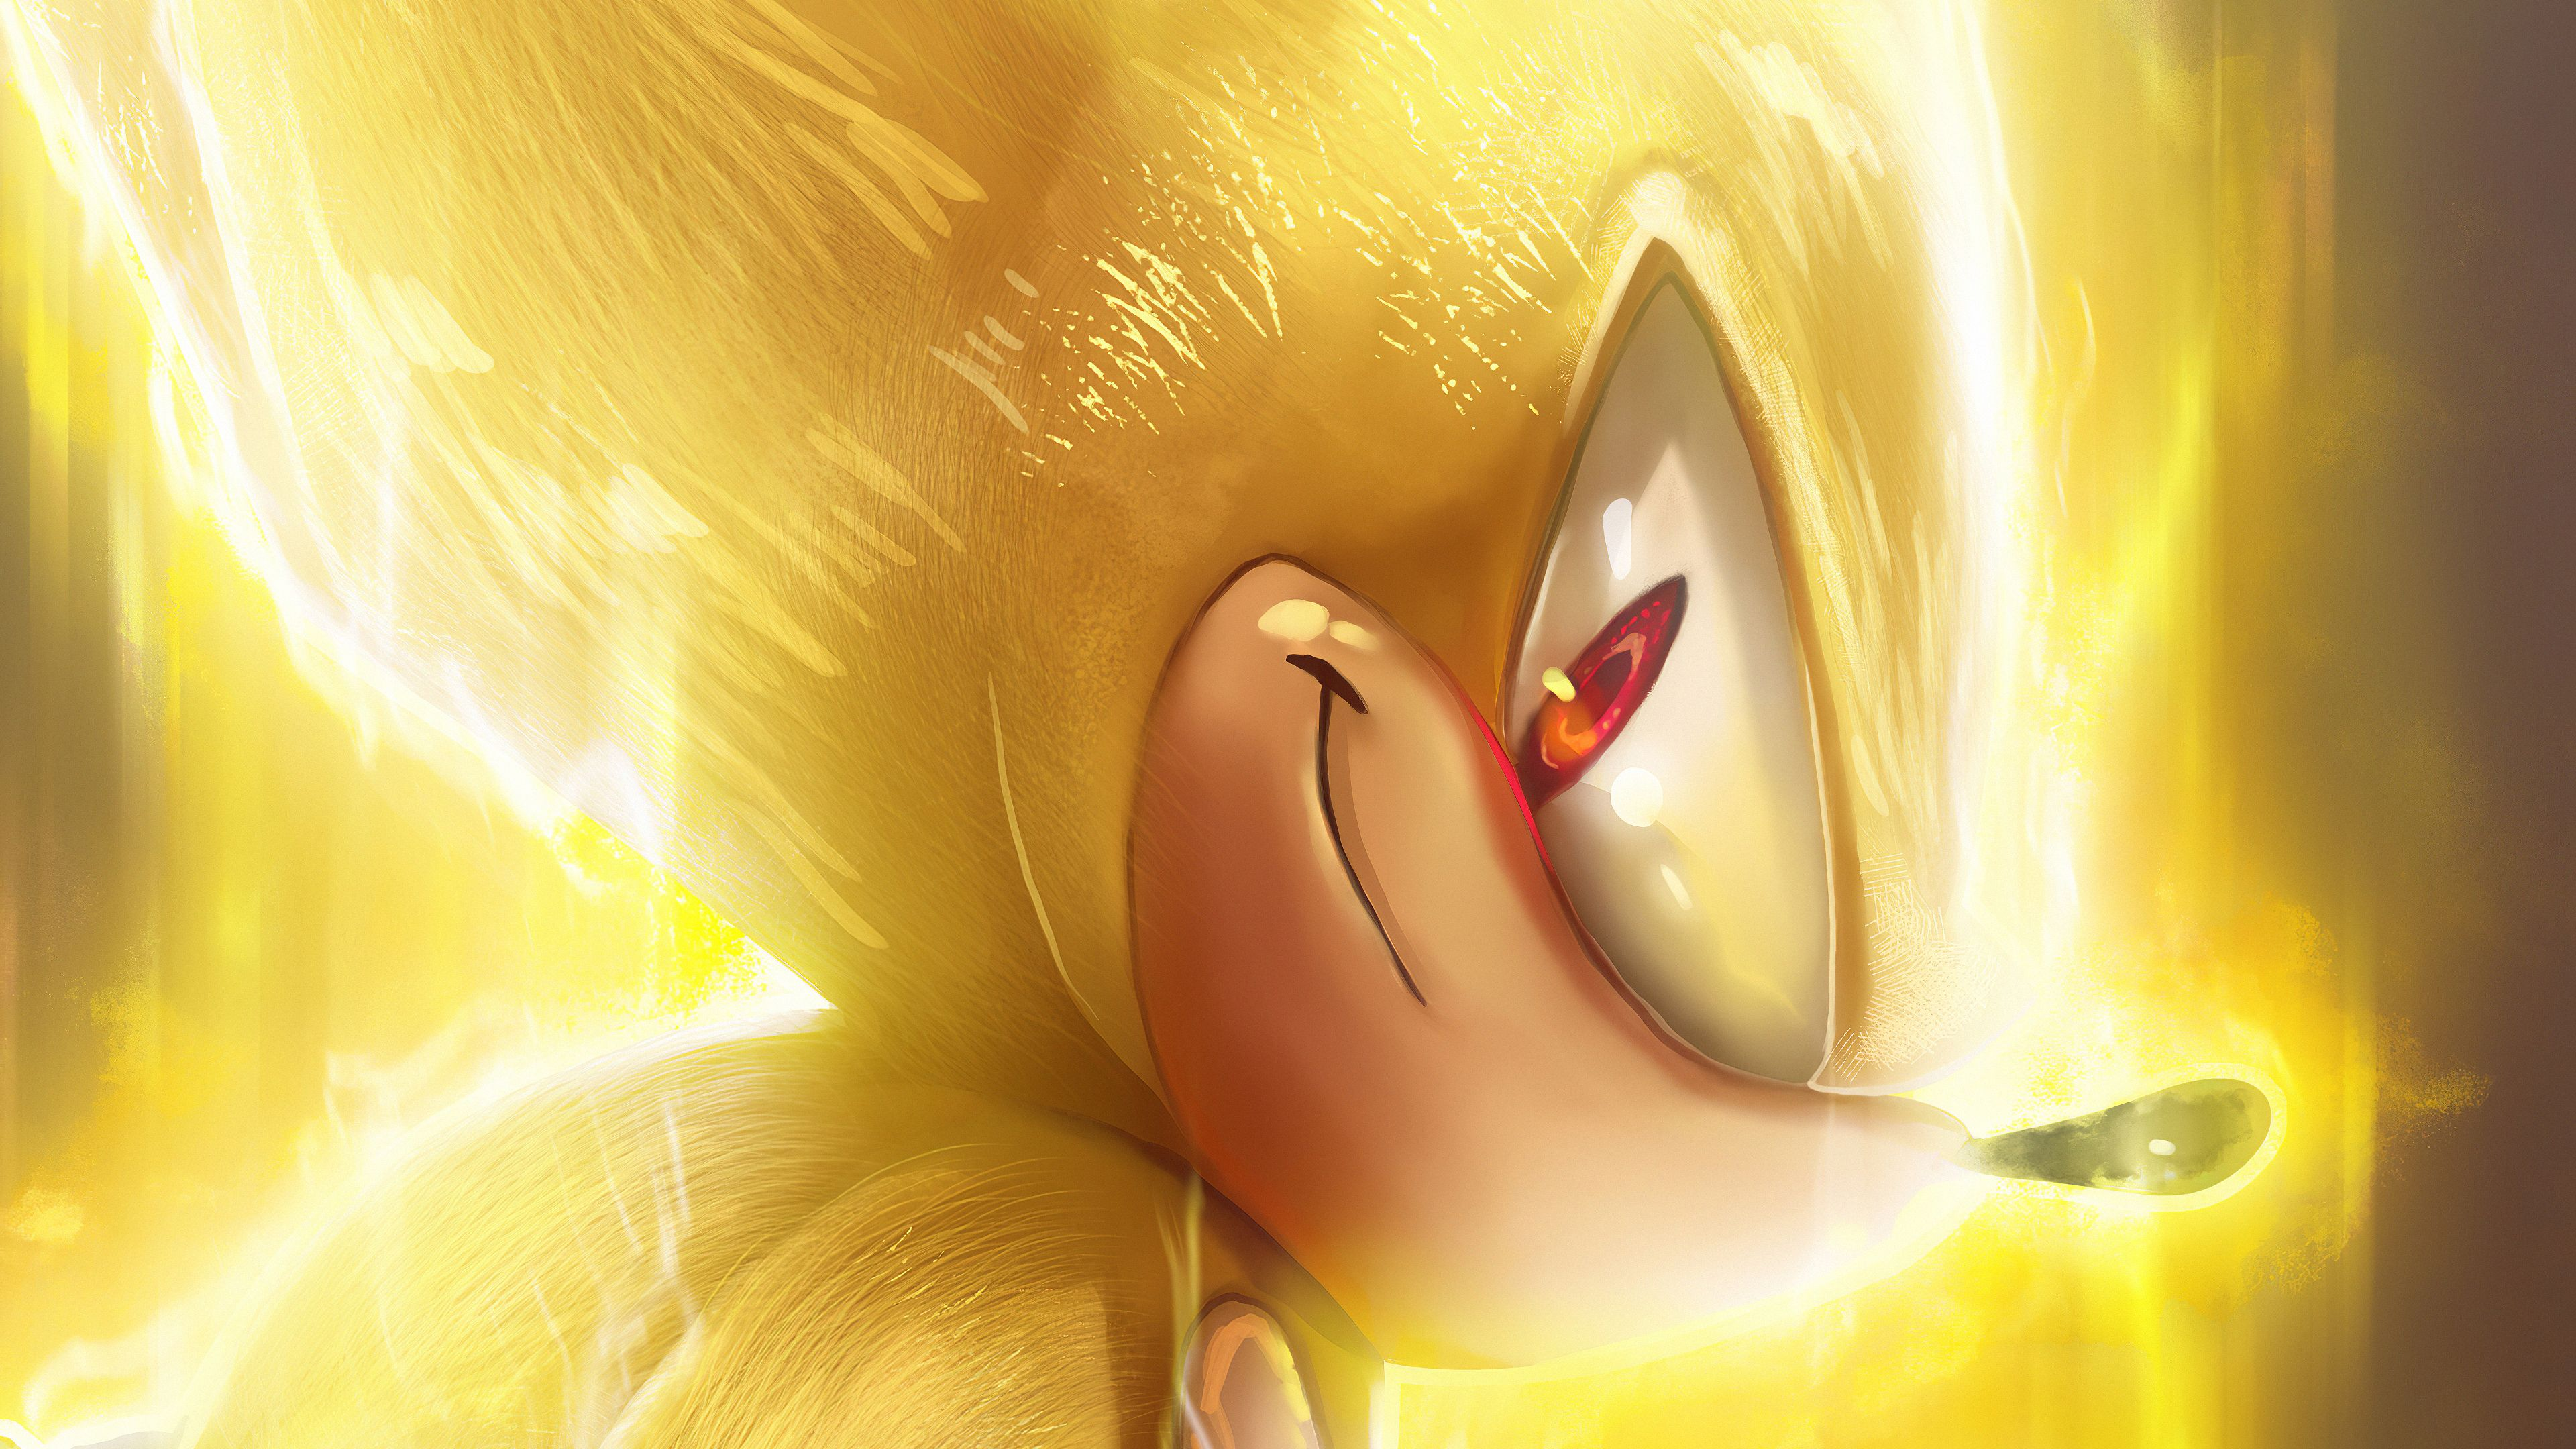 Sonic The Hedgehog Yellow Power Sonic The Hedgehog Wallpaper 4k Sonic The Hedgehog Phone Wallpaper 4k Sonic The Hedgehog Game Wallpaper Iphone Phone Wallpaper